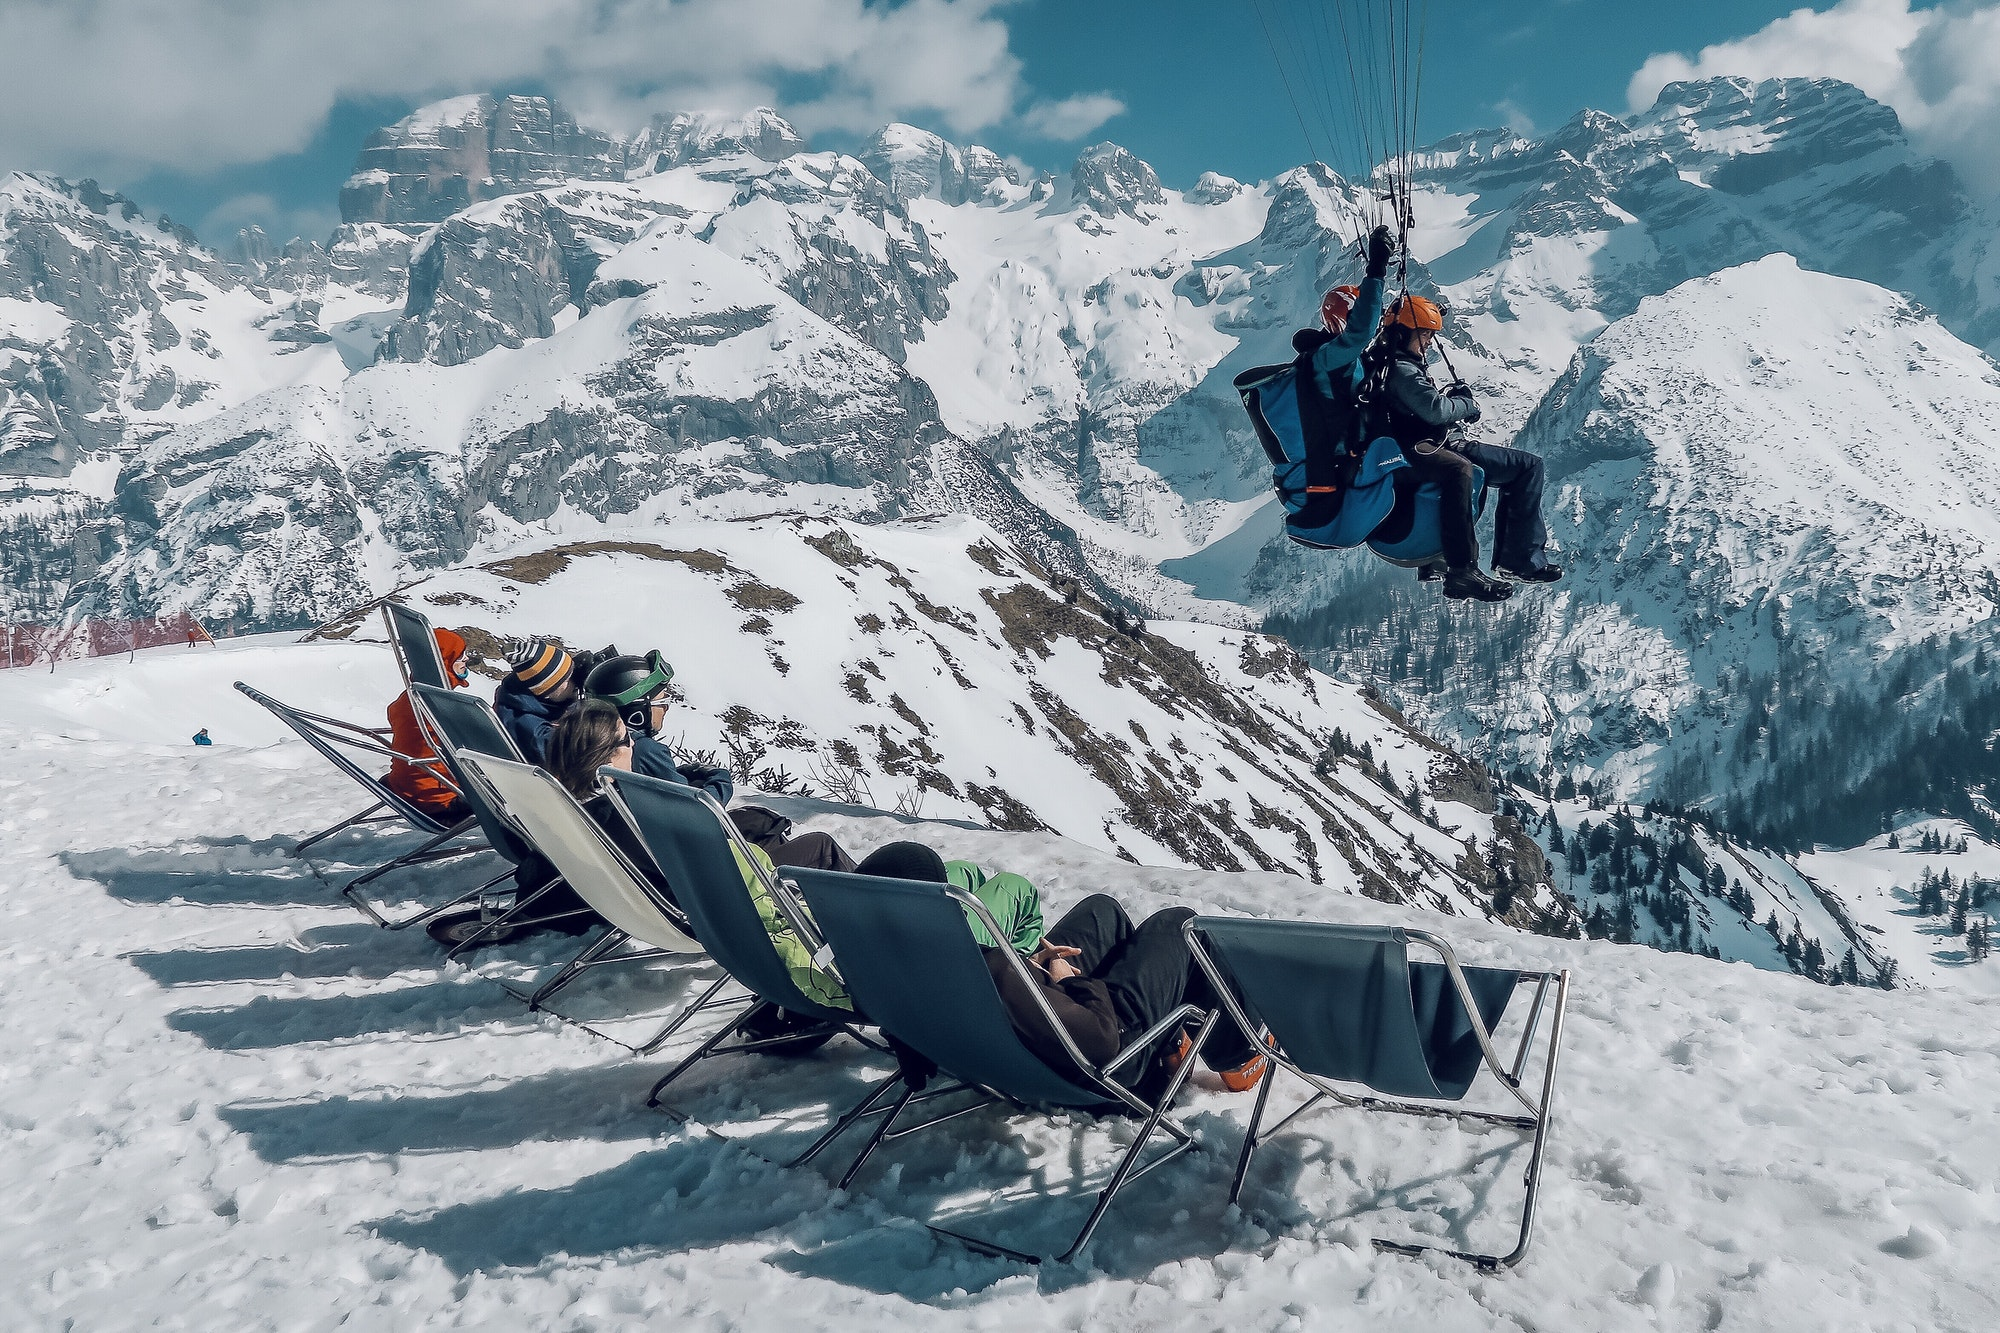 Unexpected paragliders fly over people relaxing in the winter sun in high mountains scenery.